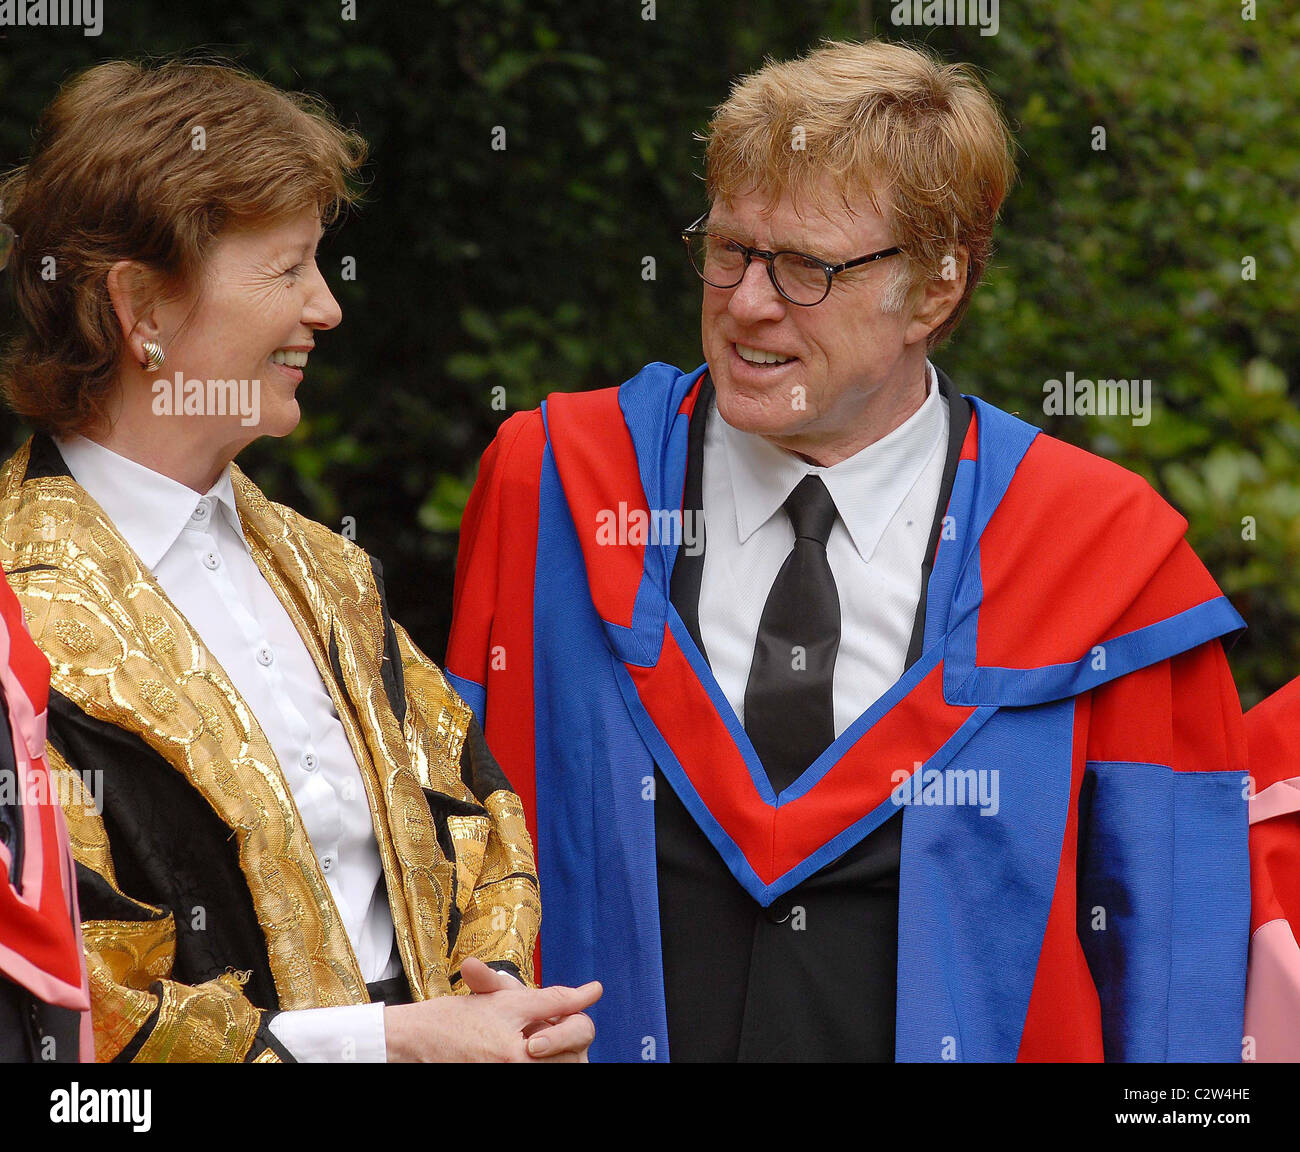 Robert Redford is awarded the Honorary Degree of 'Doctor of Letters' at Trinity College Dublin, Ireland - 11.07.08